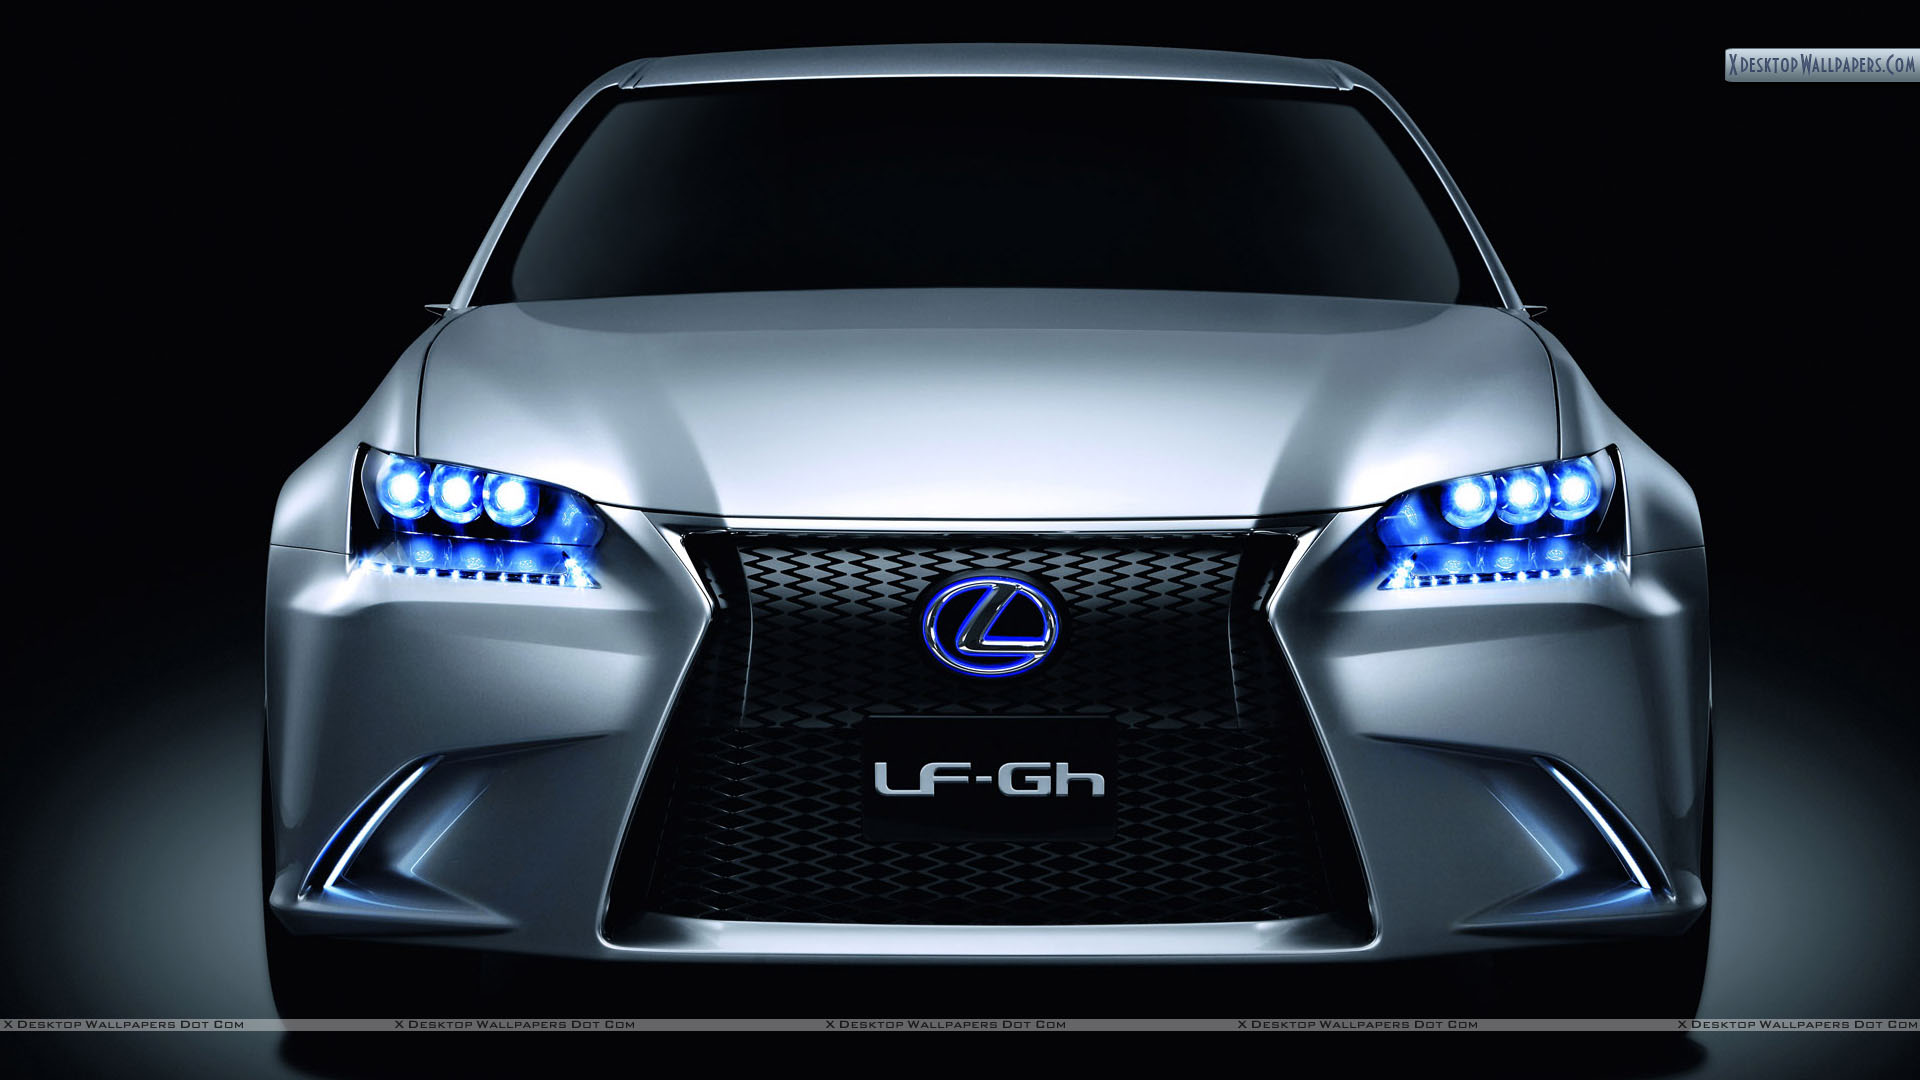 Lexus Lf Gh Hybrid Concept Front Pose With Blue Lights Wallpaper